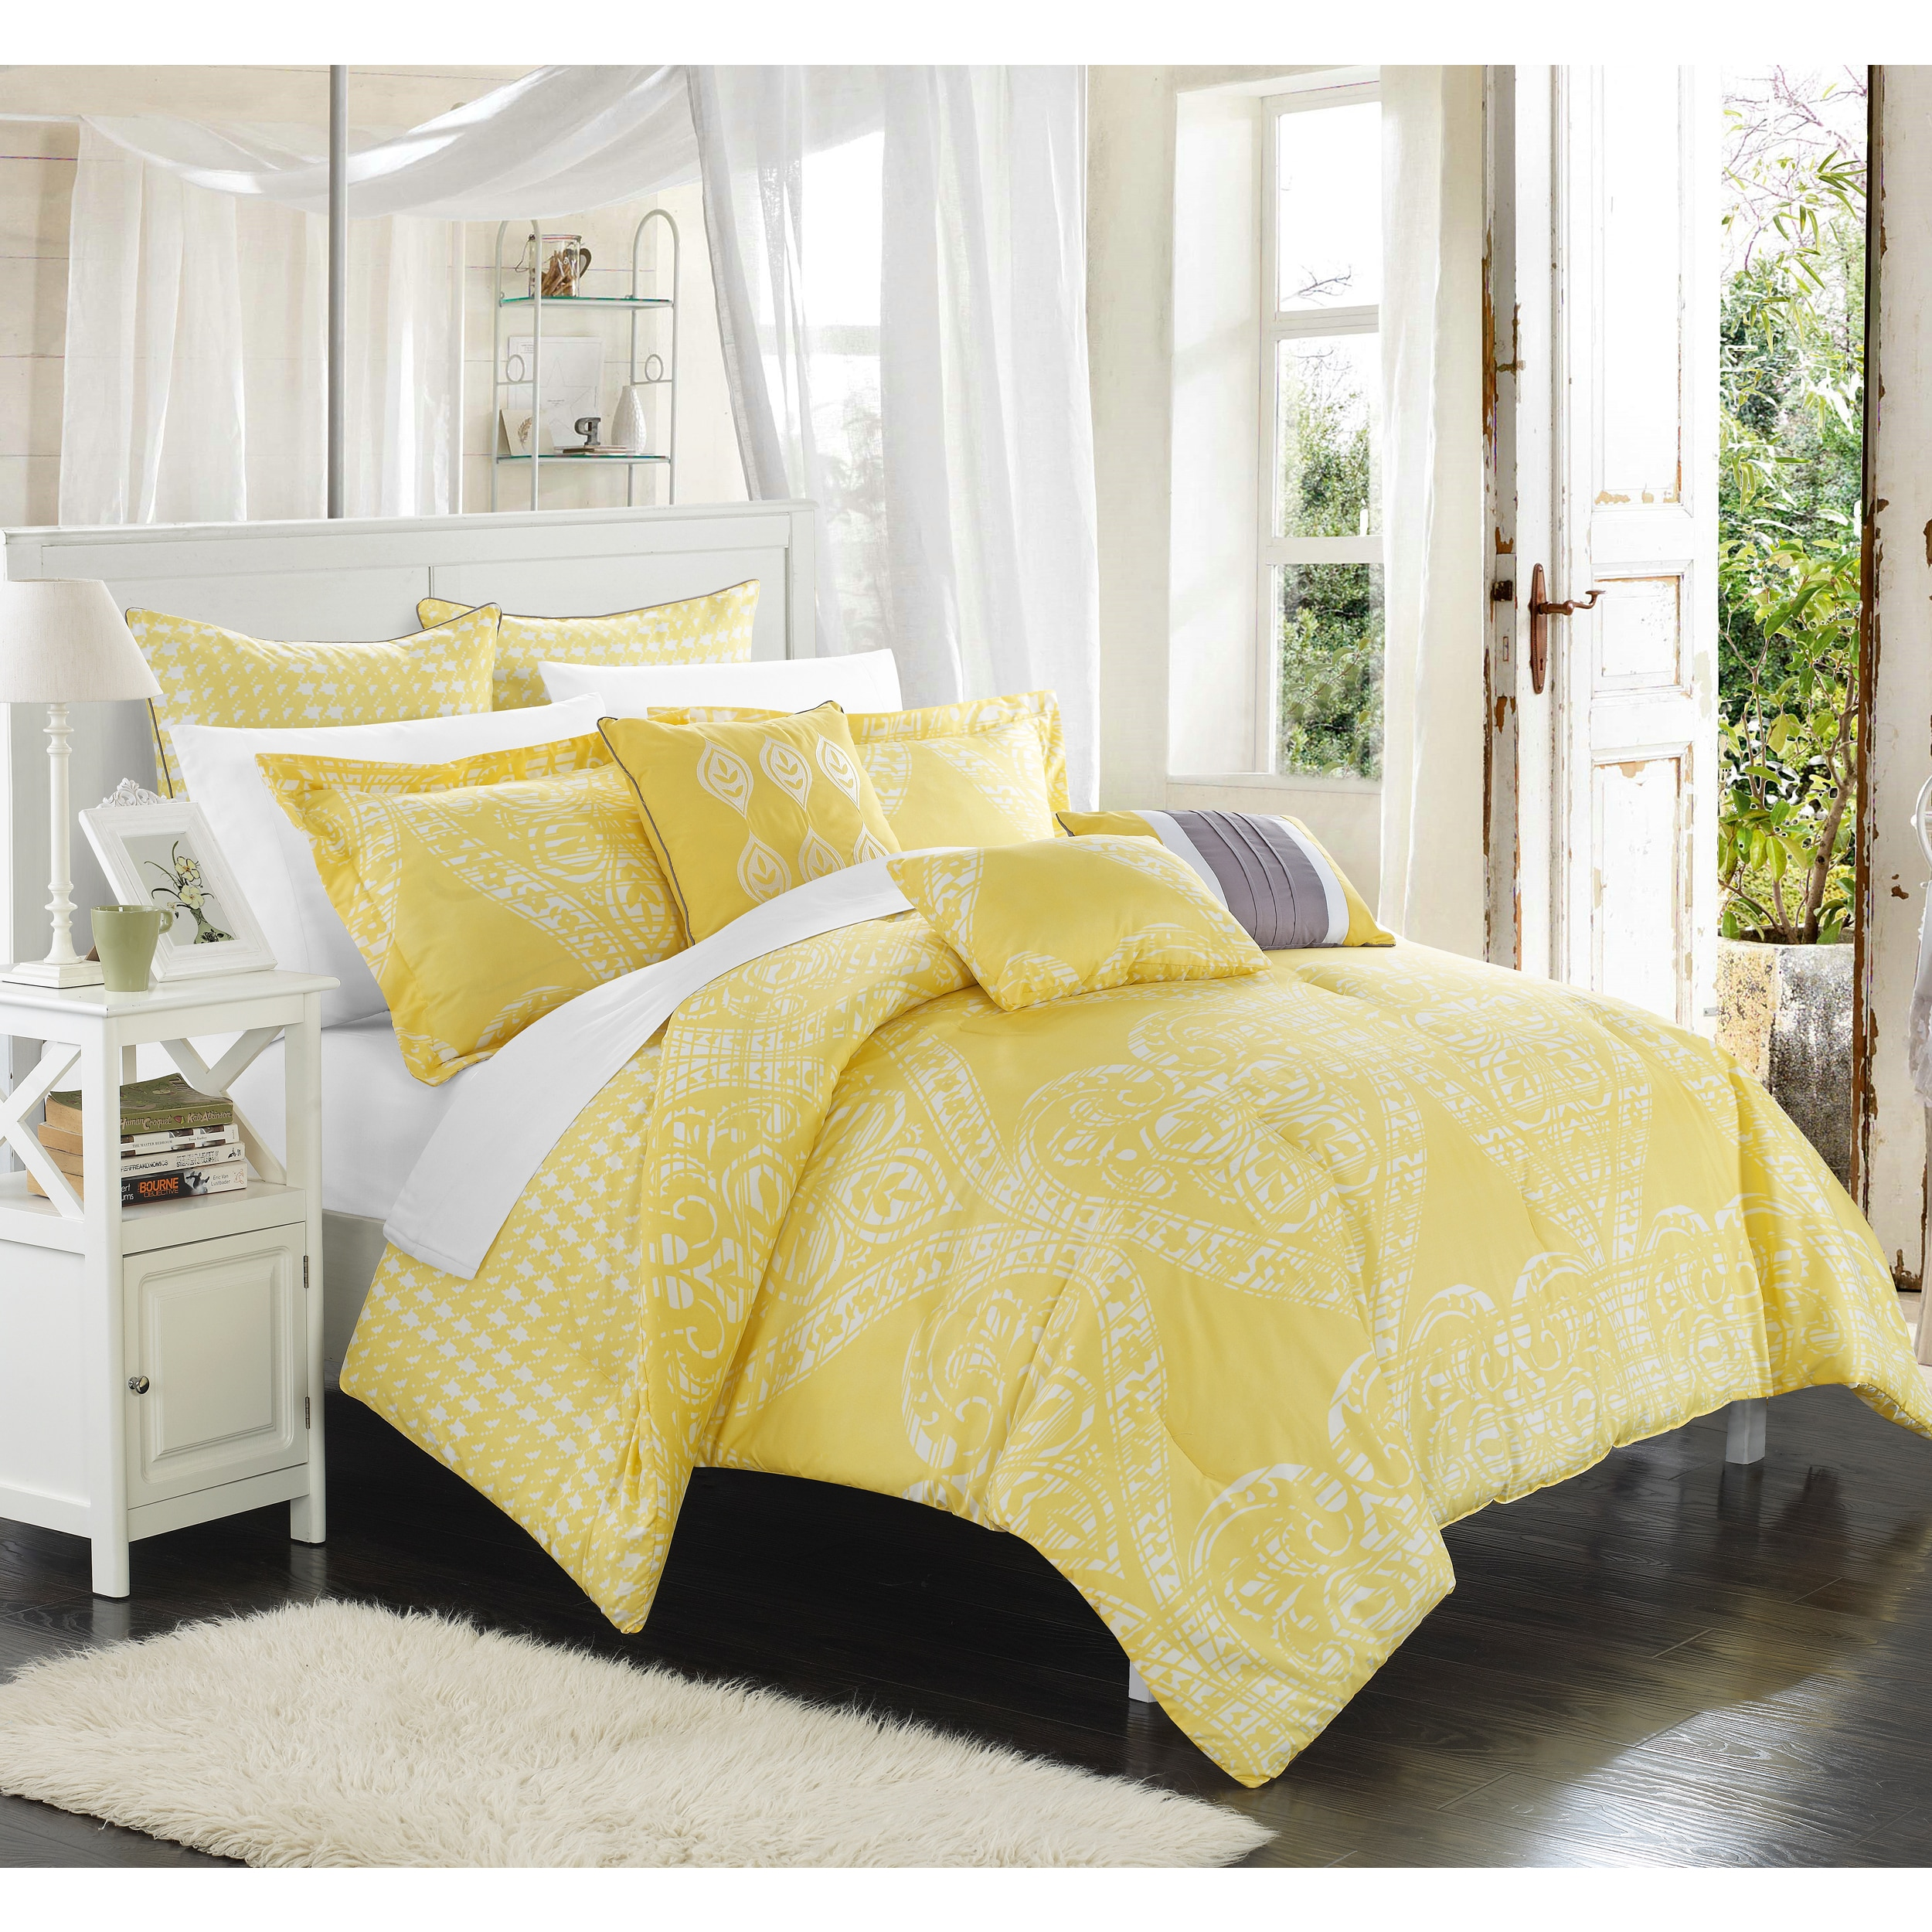 Shop Chic Home Perugia Yellow Oversized Reversible 8 Piece